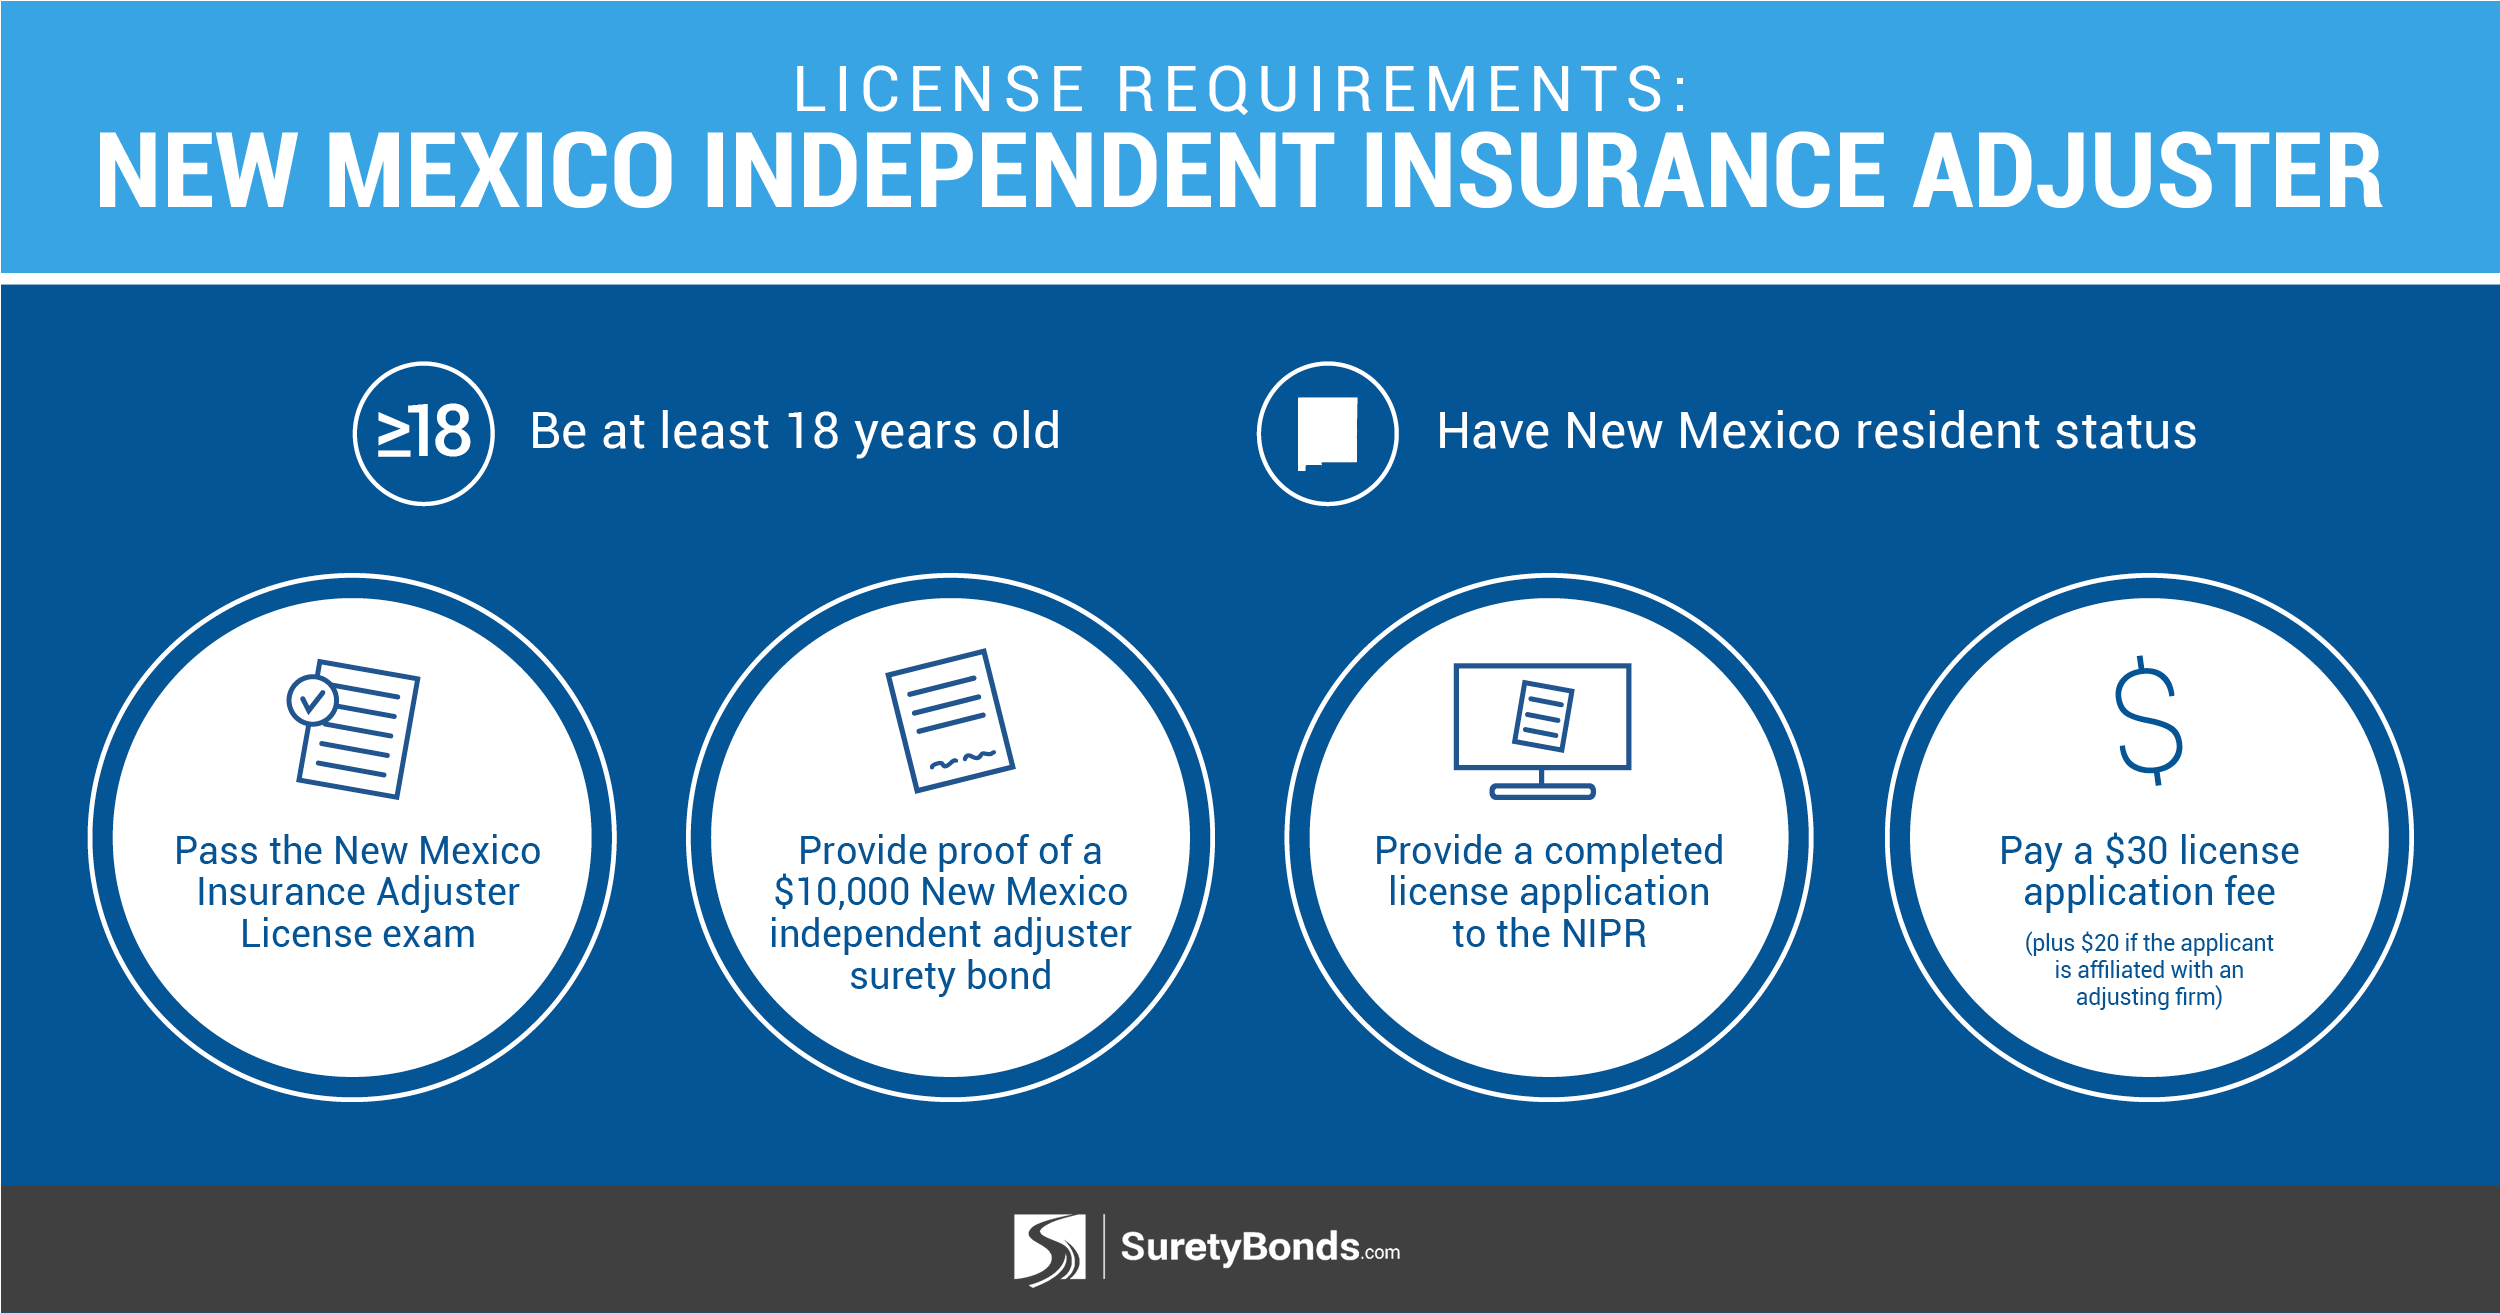 Pass the NM license exam, post a $10,000 surety bond, complete license application, and pay a $30 license fee.